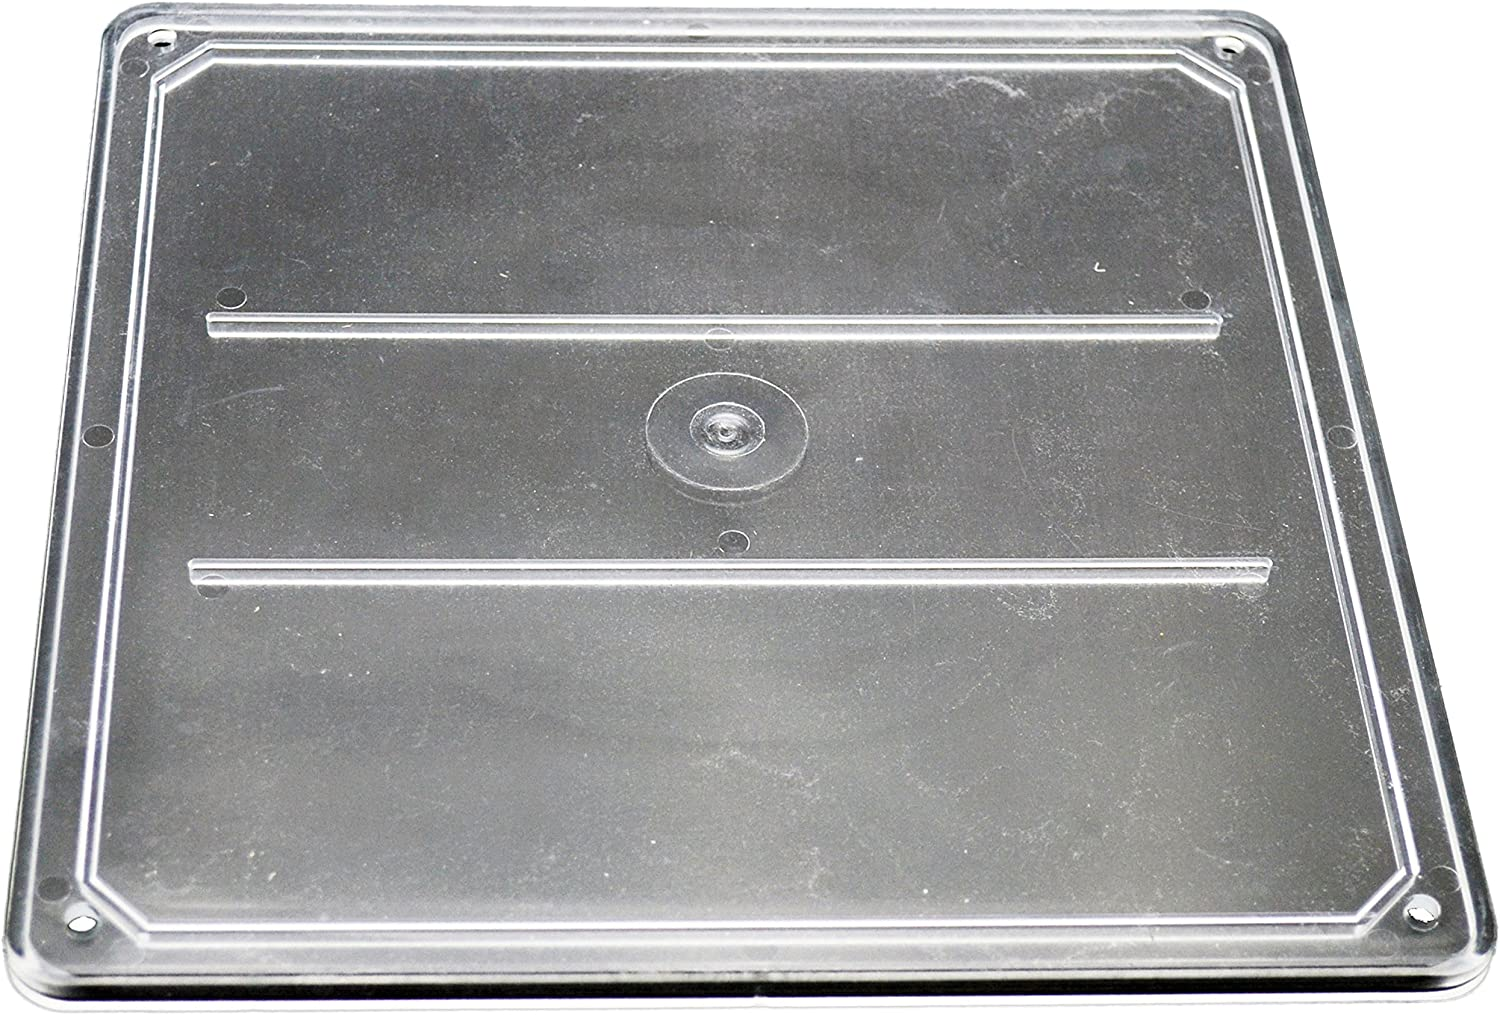 Johnson Latest Selling and selling item Pump 54304 Cover Sump Clear